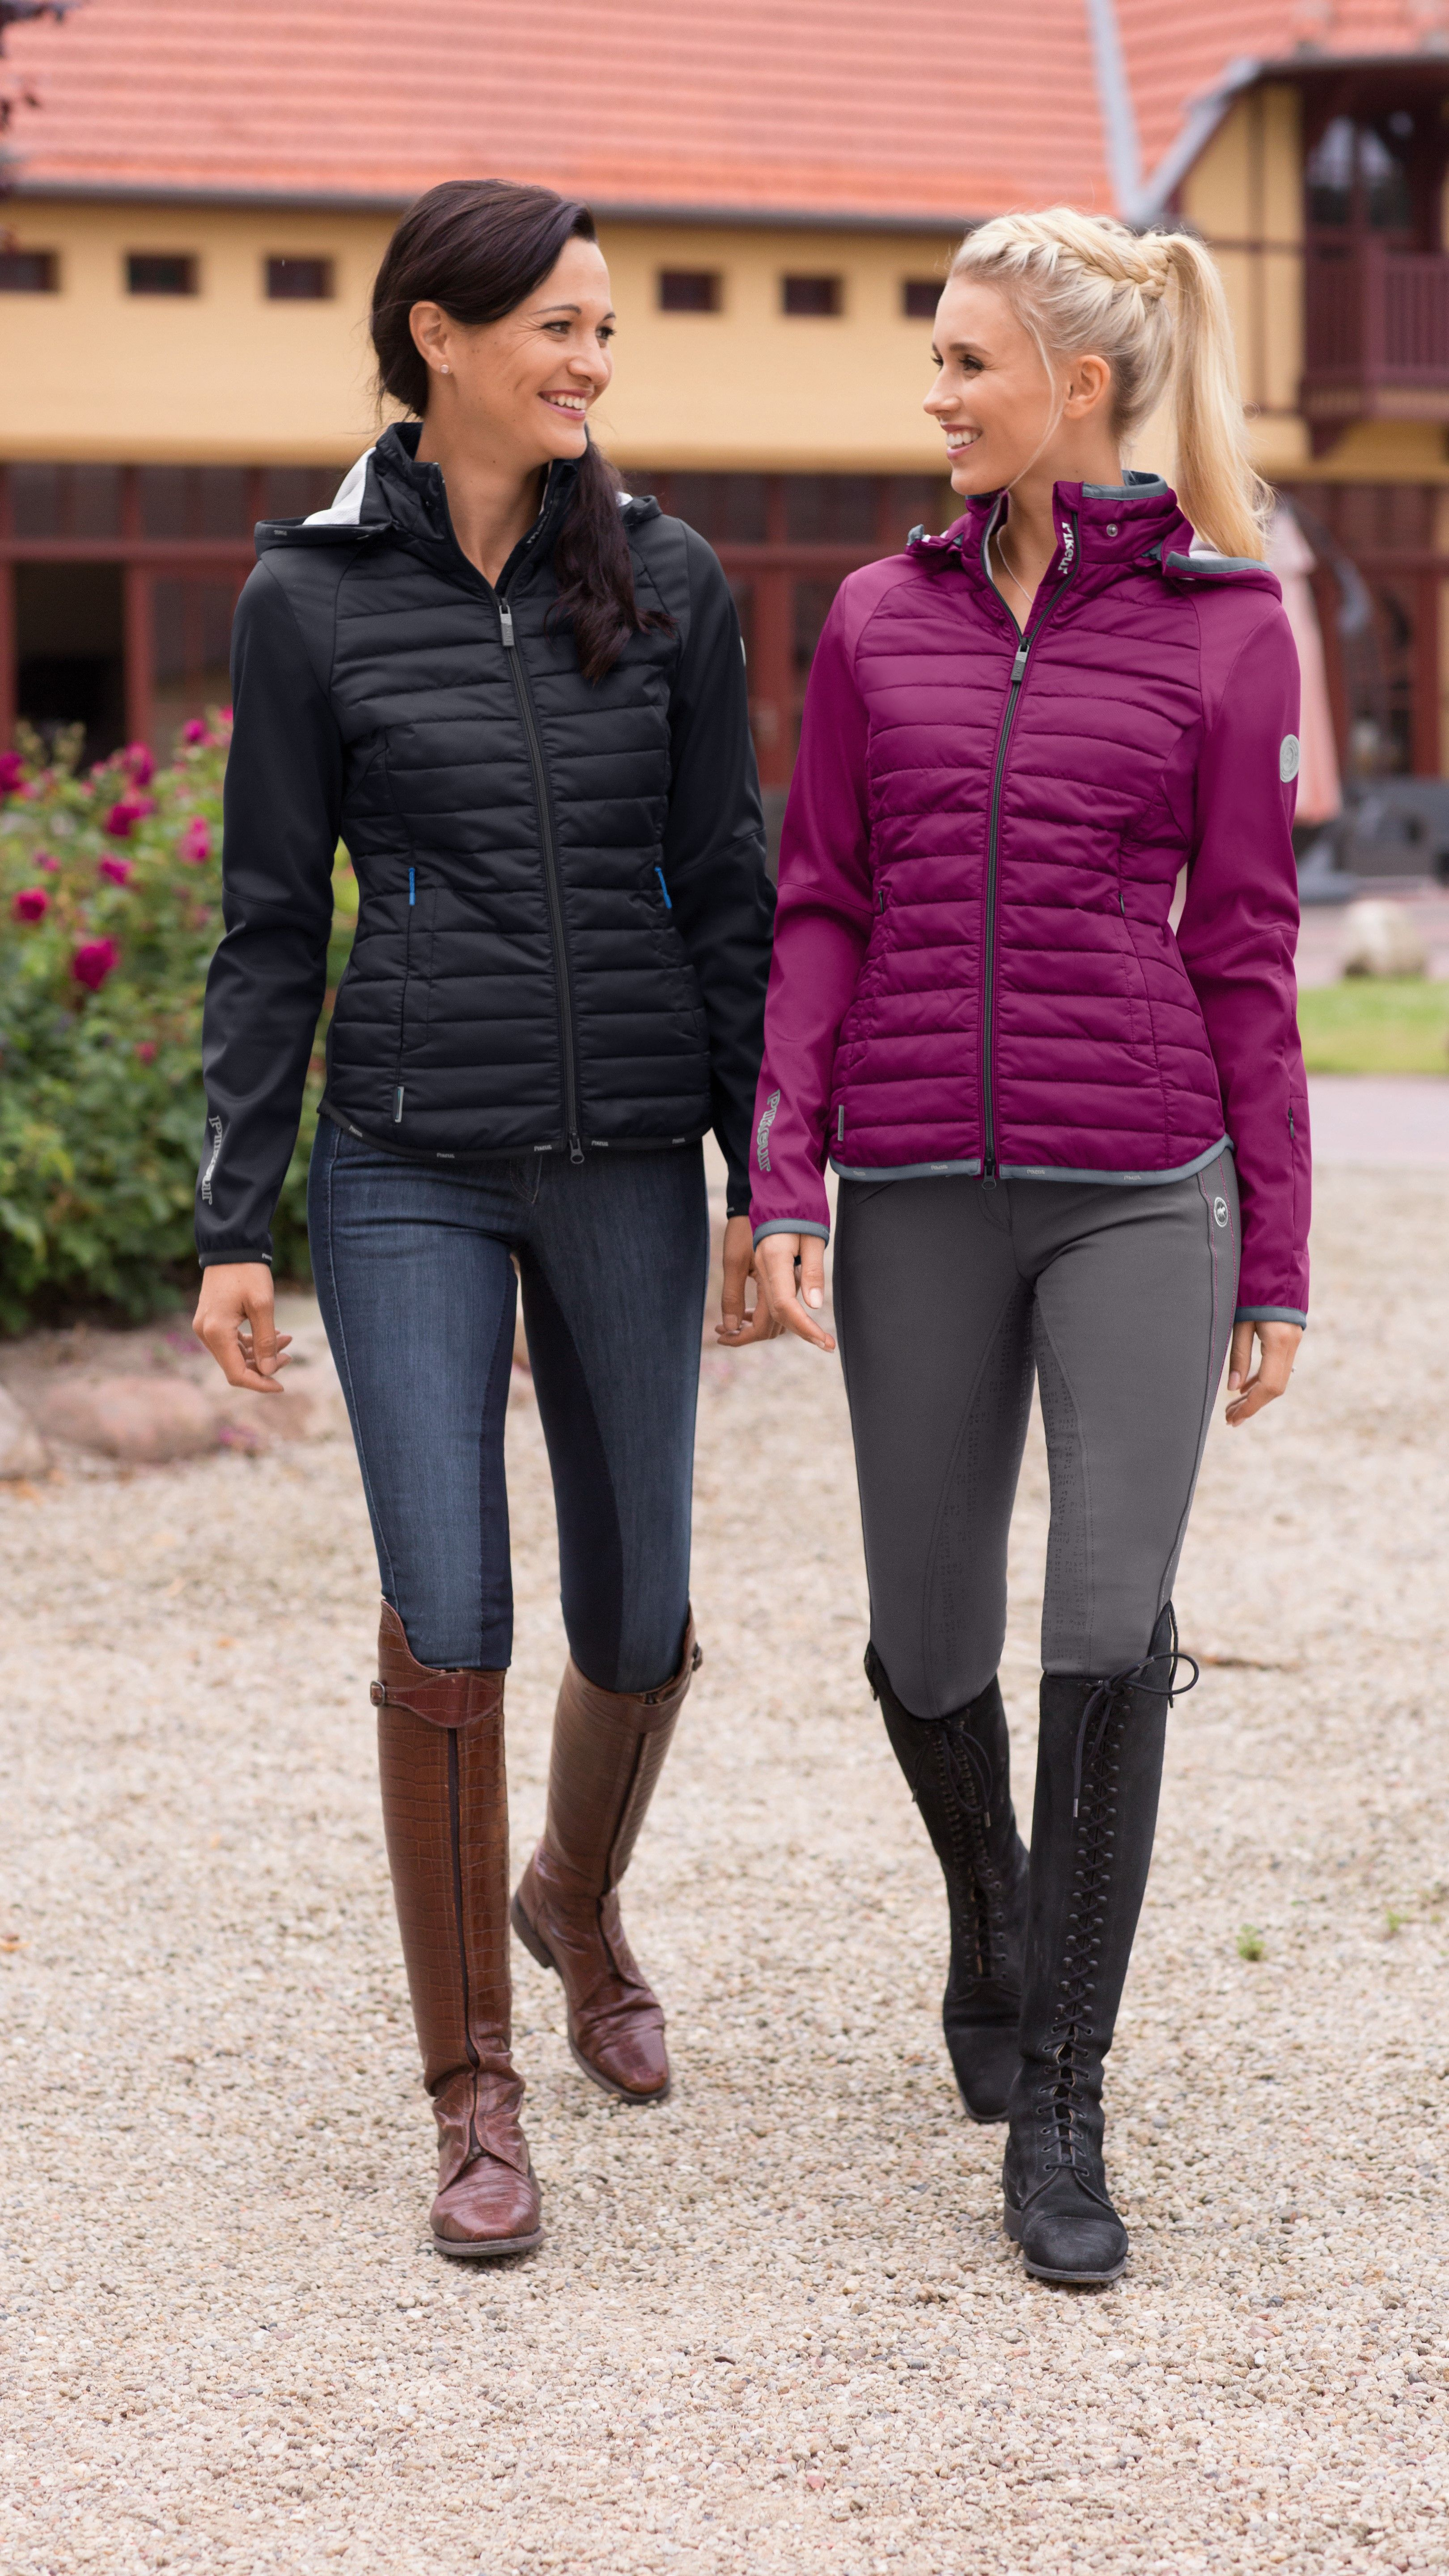 bd3c744db05734 Riding clothes | Horse riding clothes in 2019 | Riding boot outfits ...